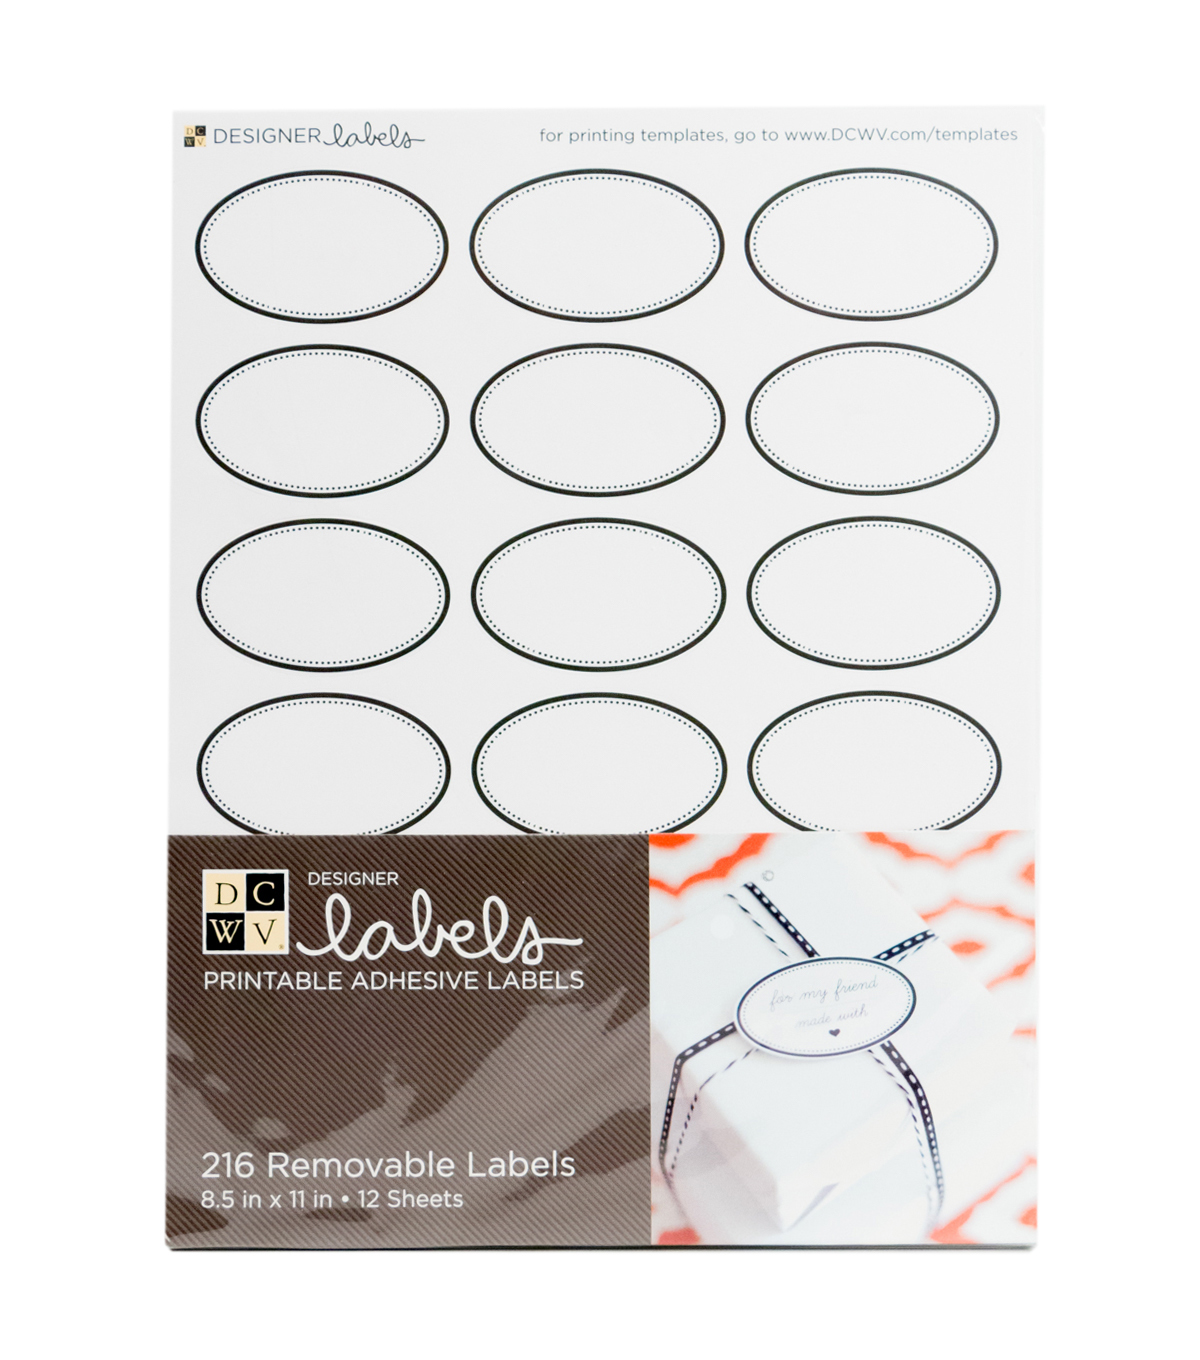 DCWV Oval Labels with Black Border